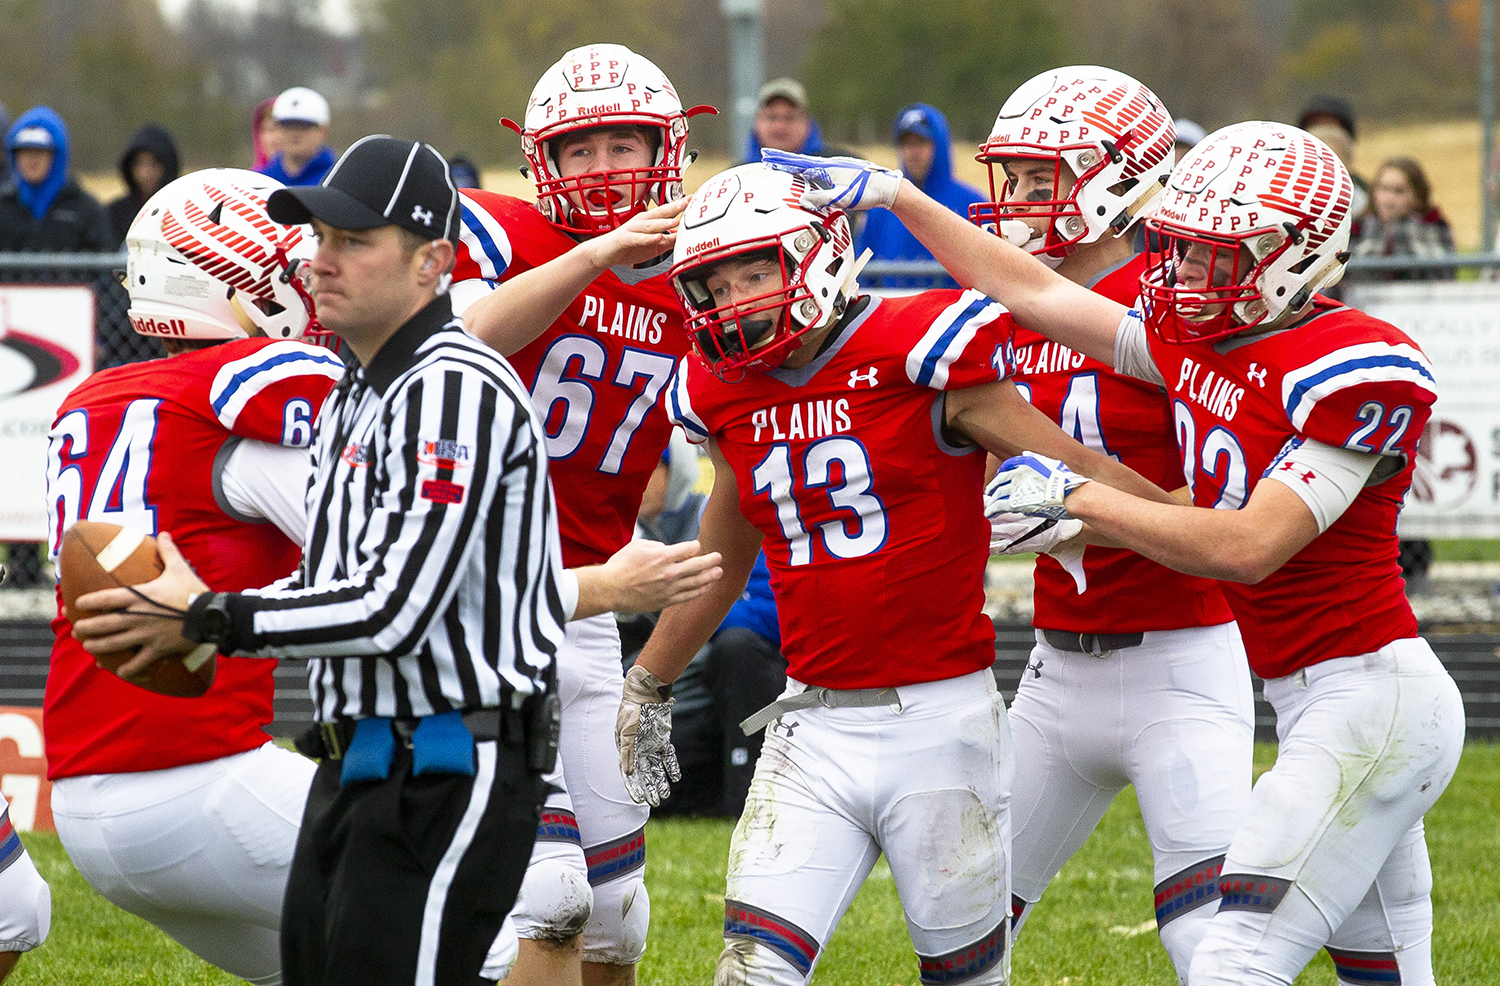 Pleasant Plains' Lucas Western is congratulated by teammates after recovering a Greenville fumble and running it in for a touchdown to give the Cardinals' a 6-0 lead in the second quarter of the Class 2A playoff game Saturday, Nov. 3, 2018 at Pleasant Plains High School in Pleasant Plains, Ill. [Rich Saal/The State Journal-Register]